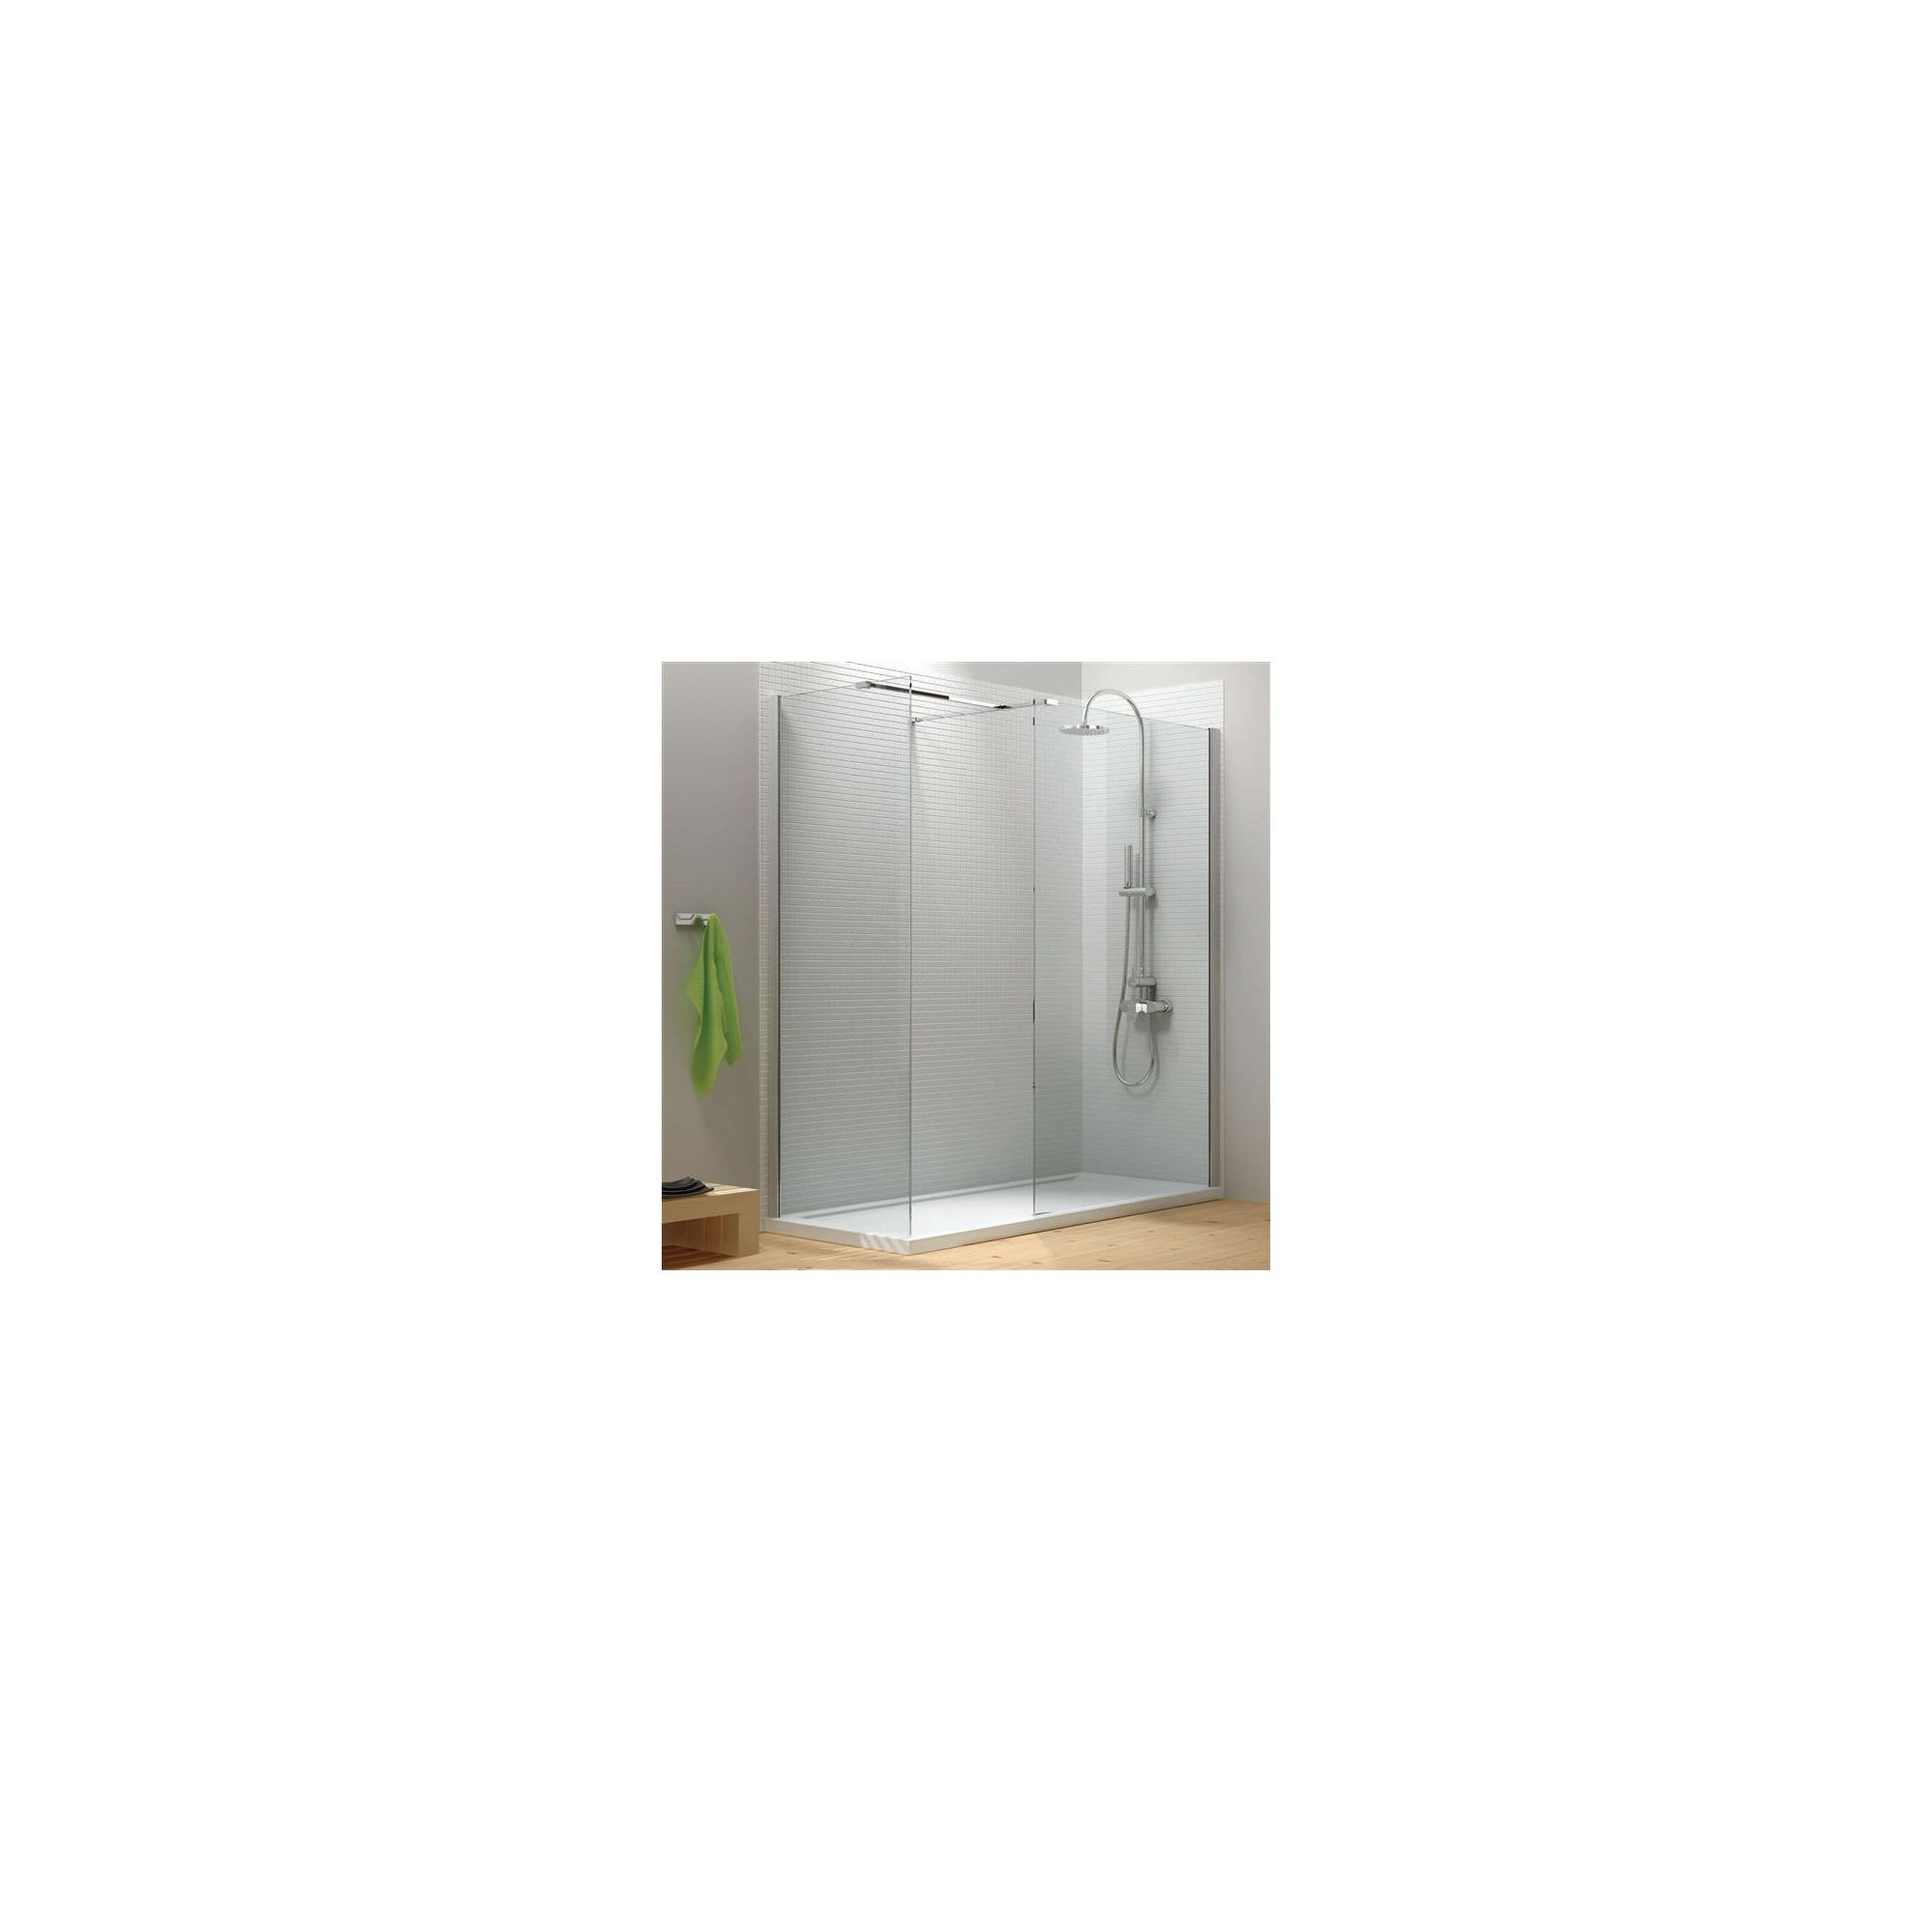 Merlyn Vivid Eight Walk-In Shower Enclosure, 1400mm x 900mm, excluding Tray, 8mm Glass at Tesco Direct